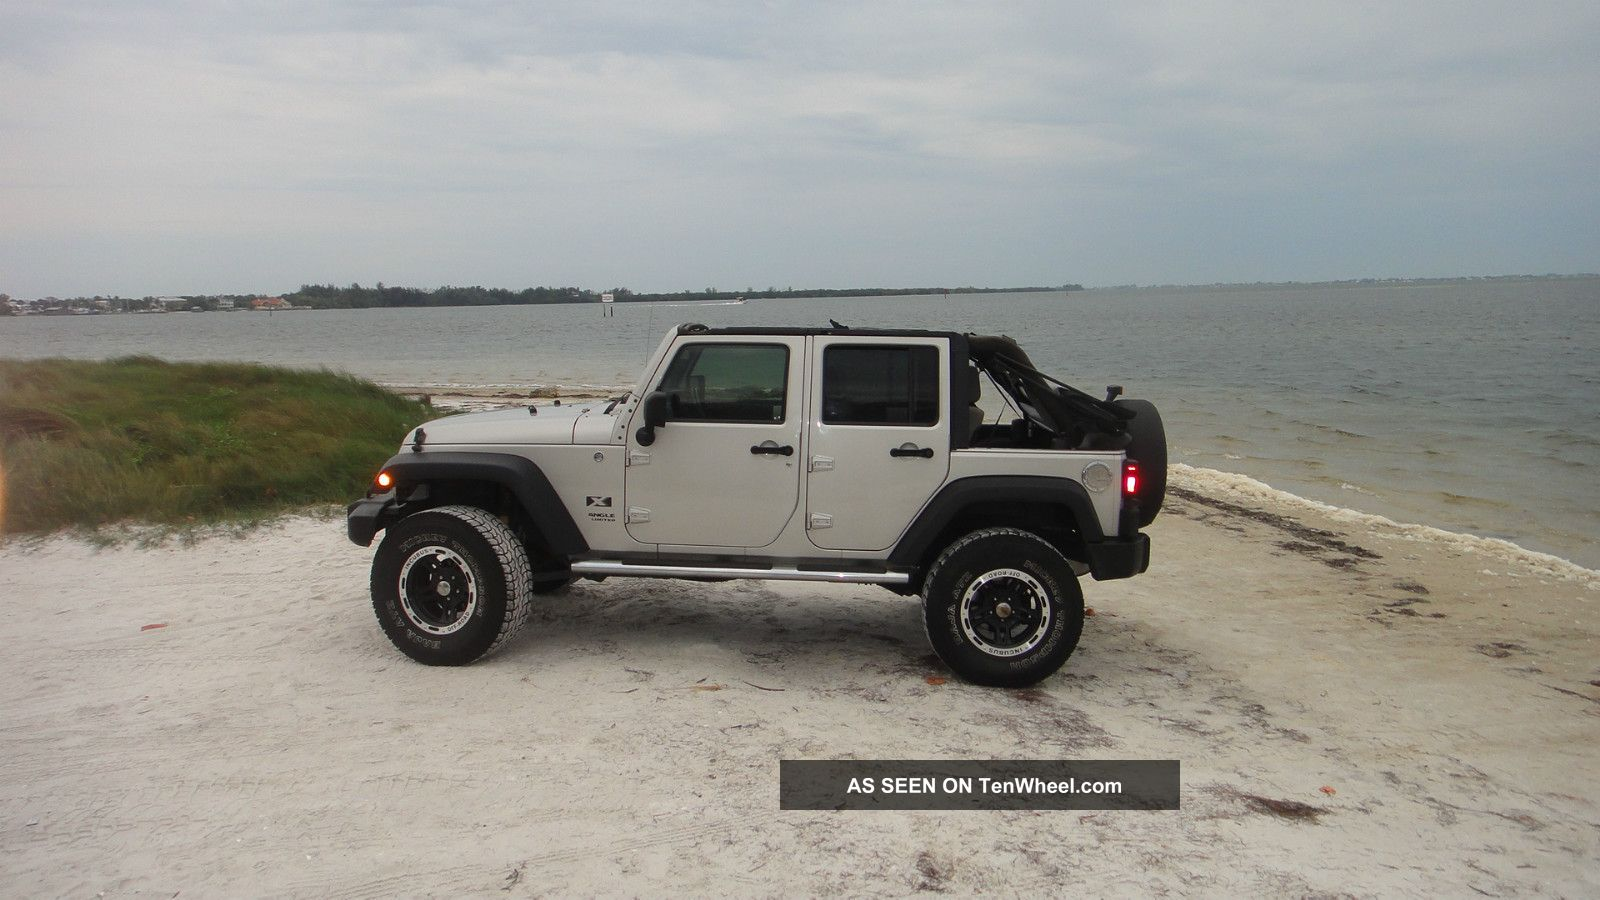 2007 jeep wrangler unlimited x incubus edition wrangler photo 5. Cars Review. Best American Auto & Cars Review